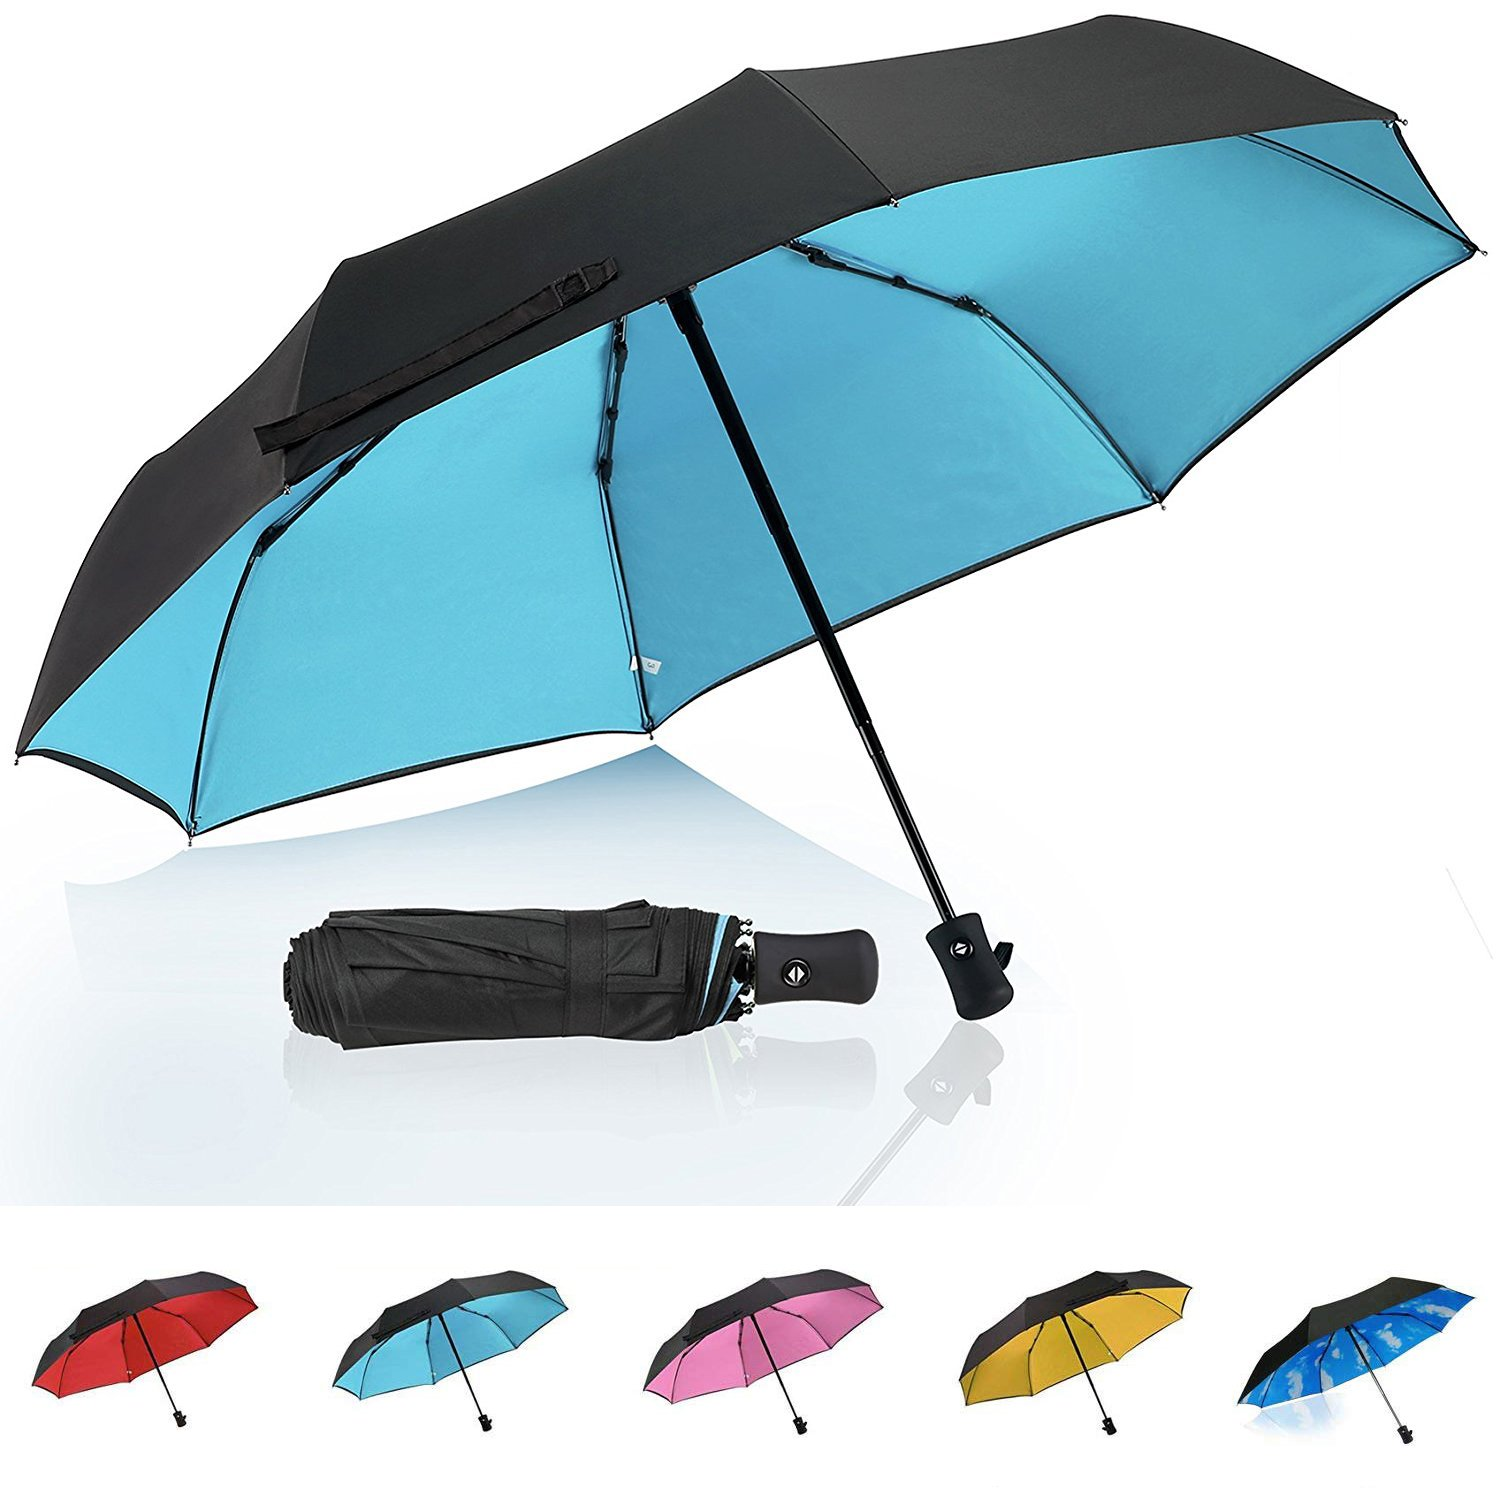 QHUMO Travel Umbrella Windproof, Auto Open Close Folding Compact Umbrellas for Women Ltd.